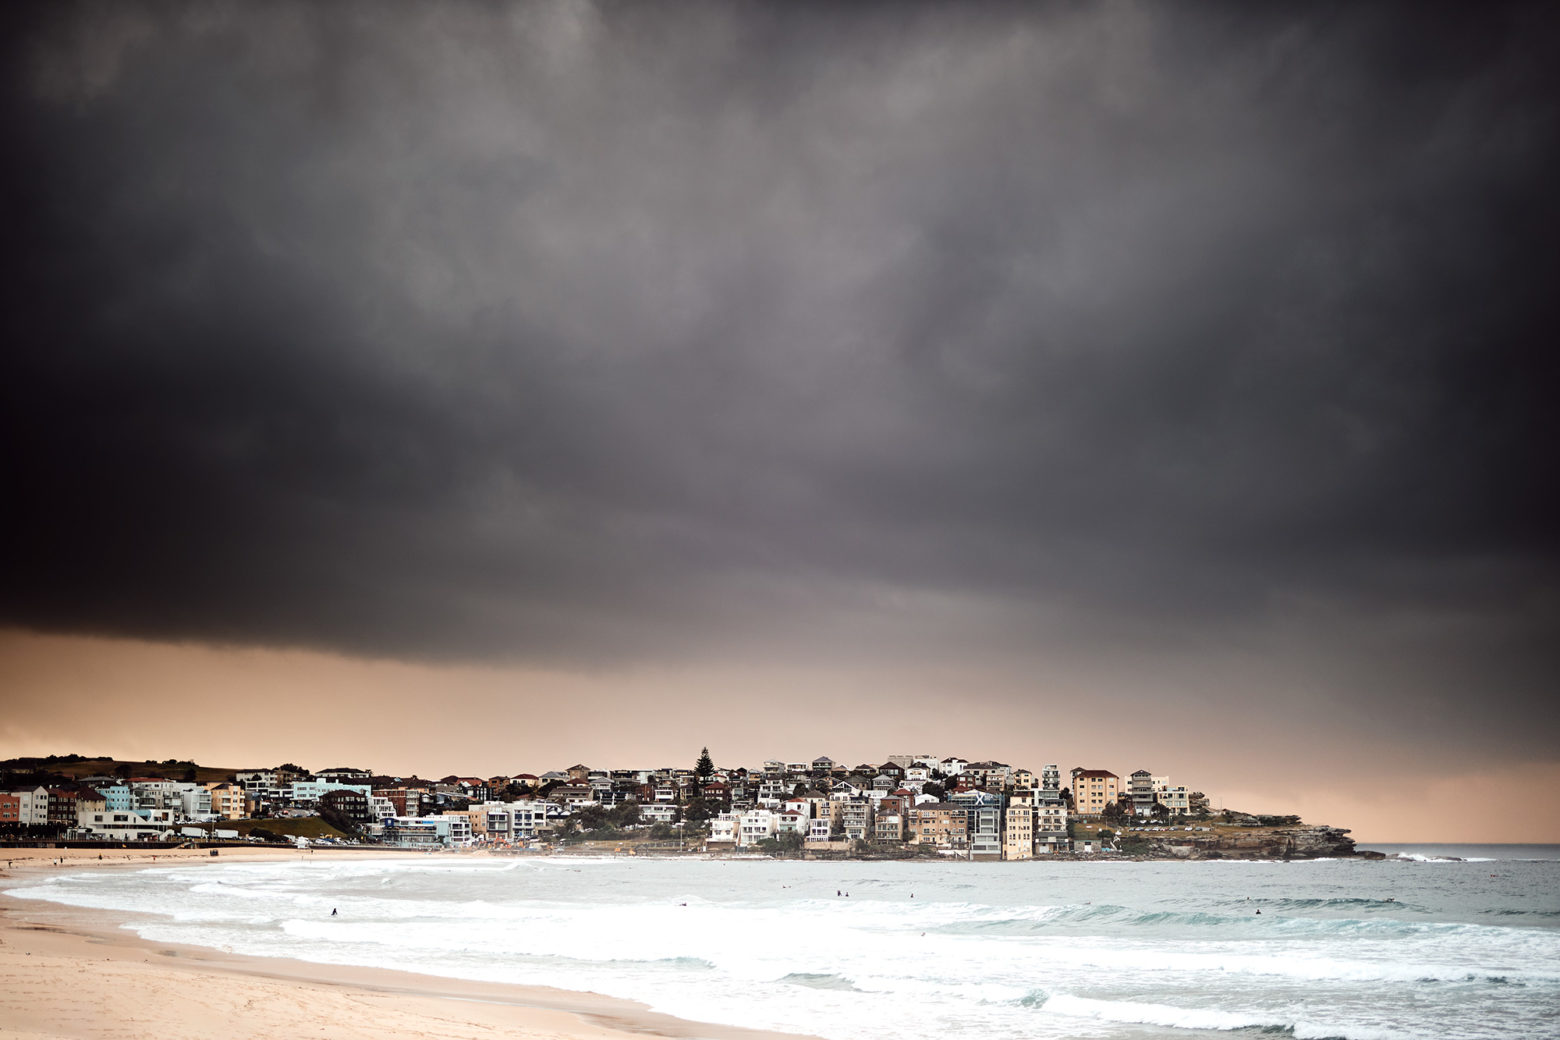 Cloudy, rainy grey morning in Bondi